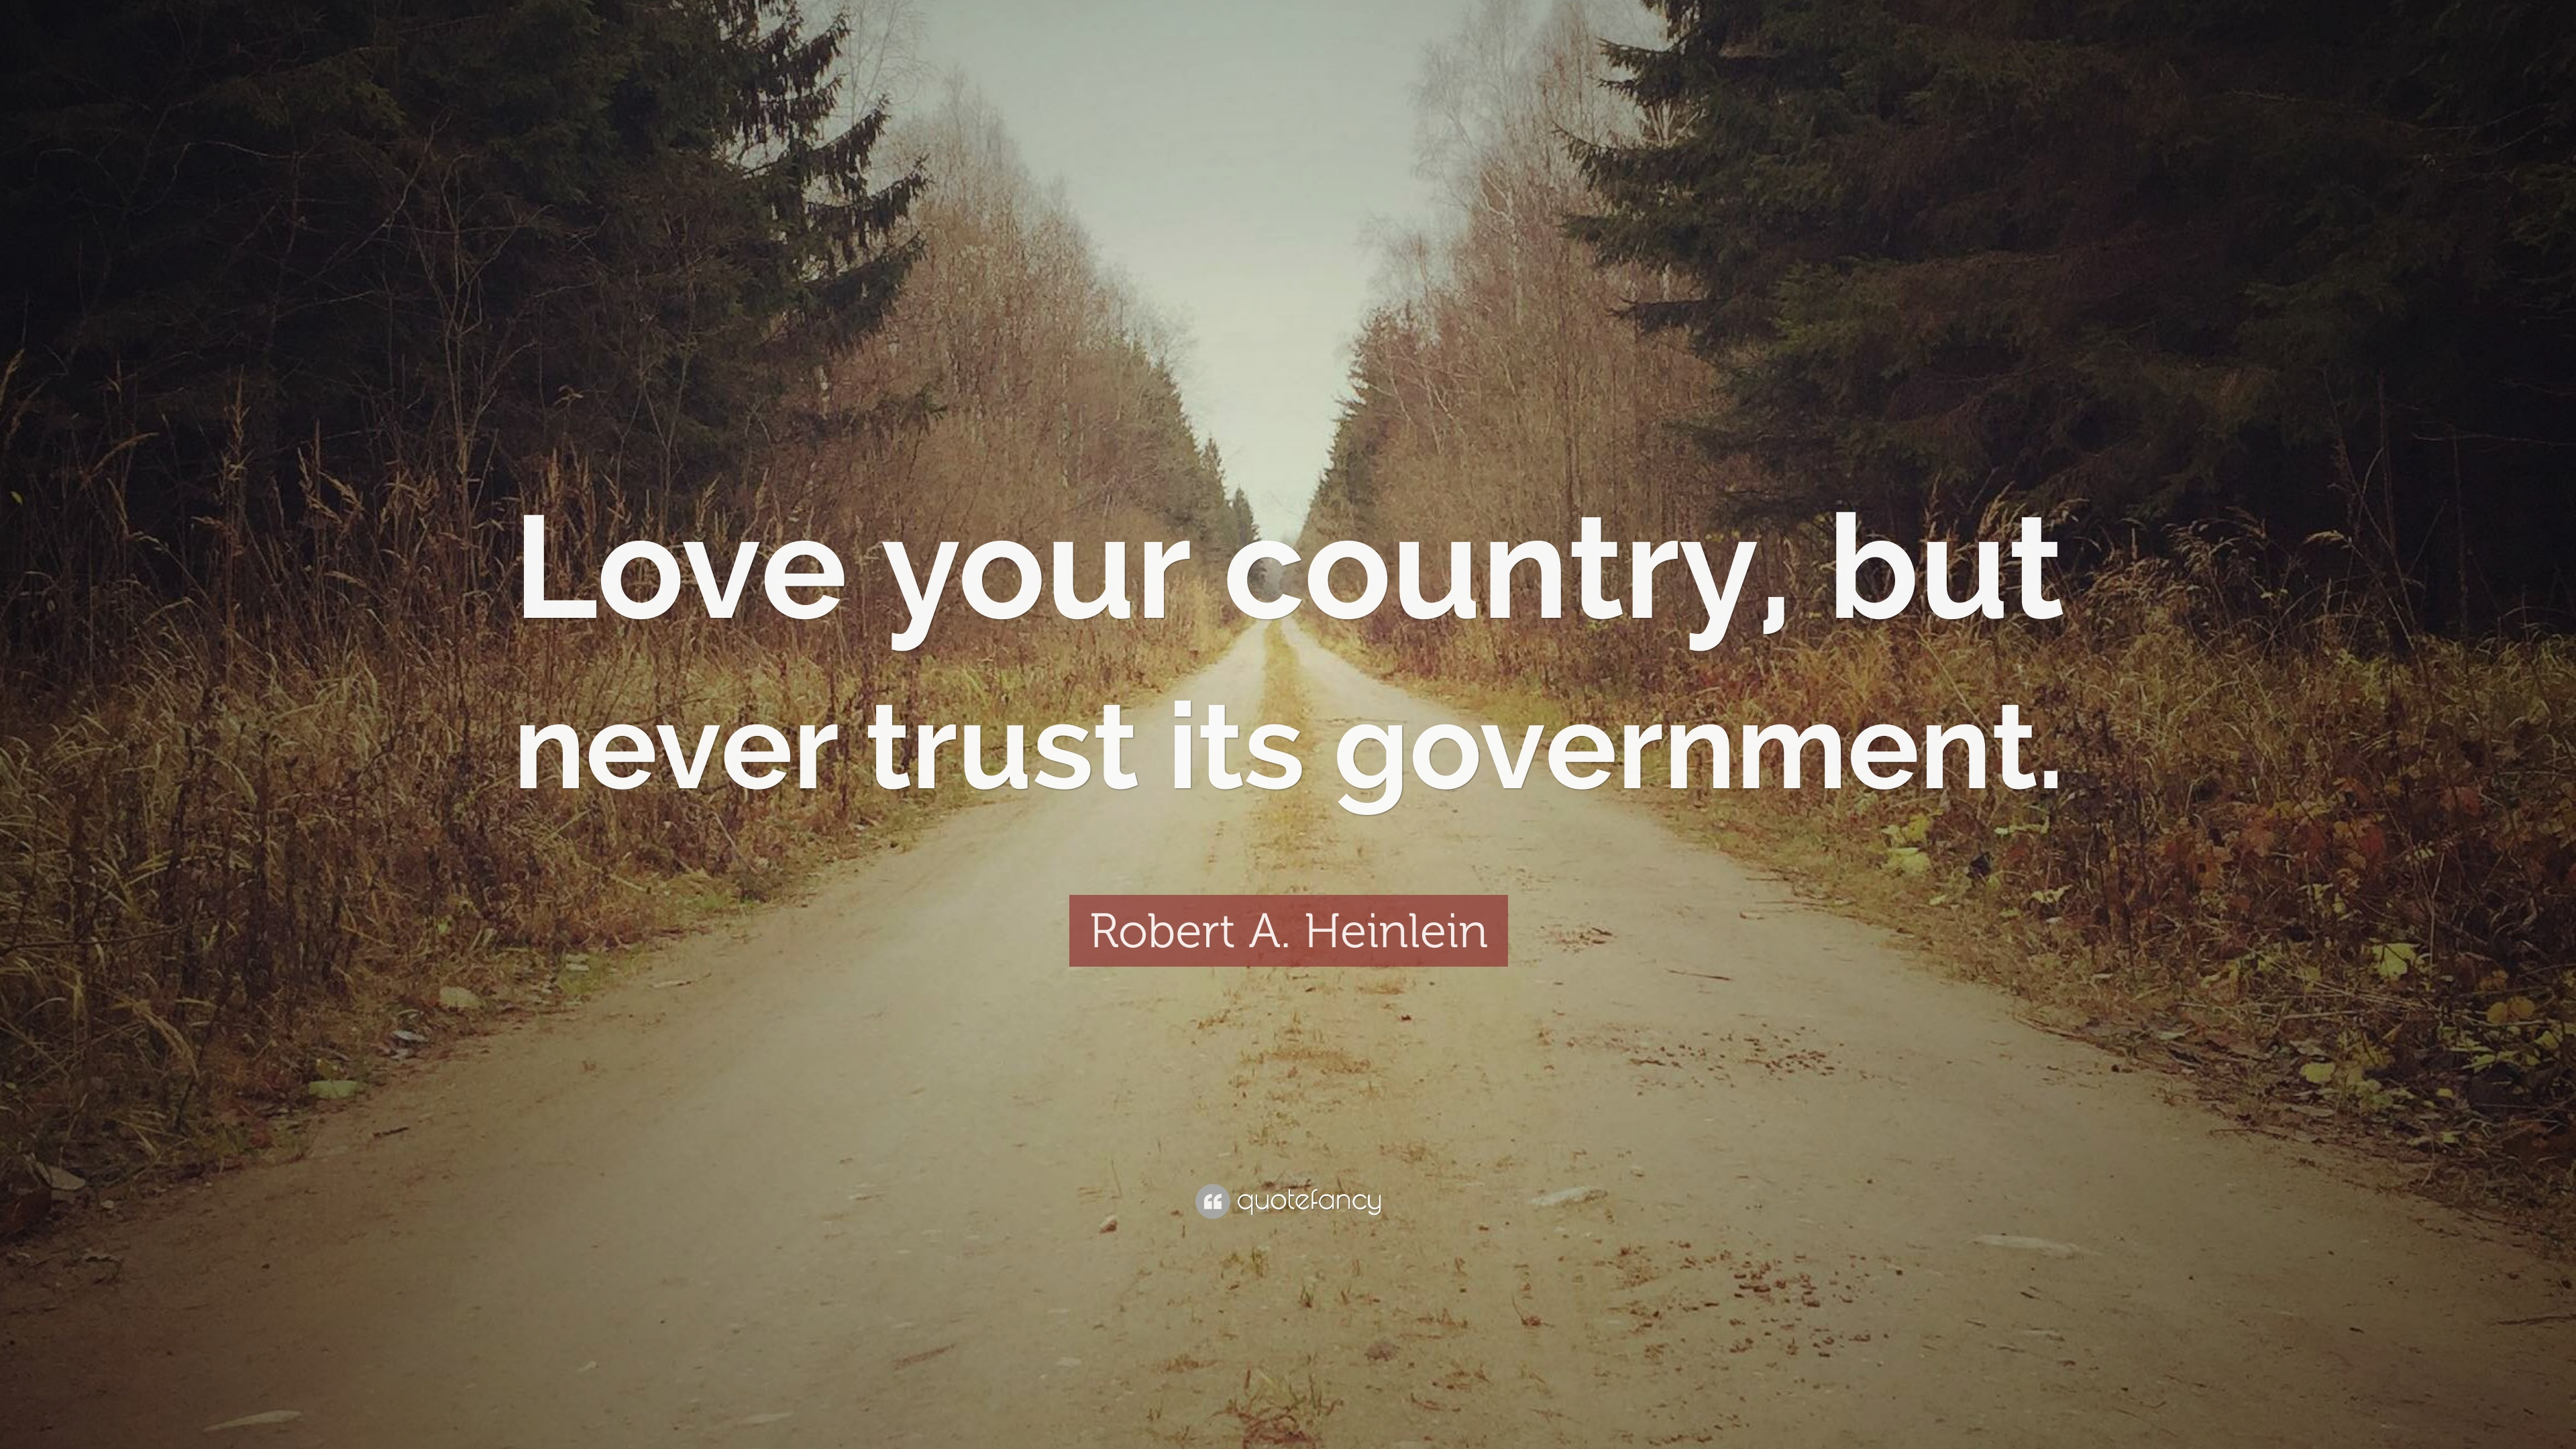 Robert A Heinlein Quote Love Your Country But Never Trust Its Government